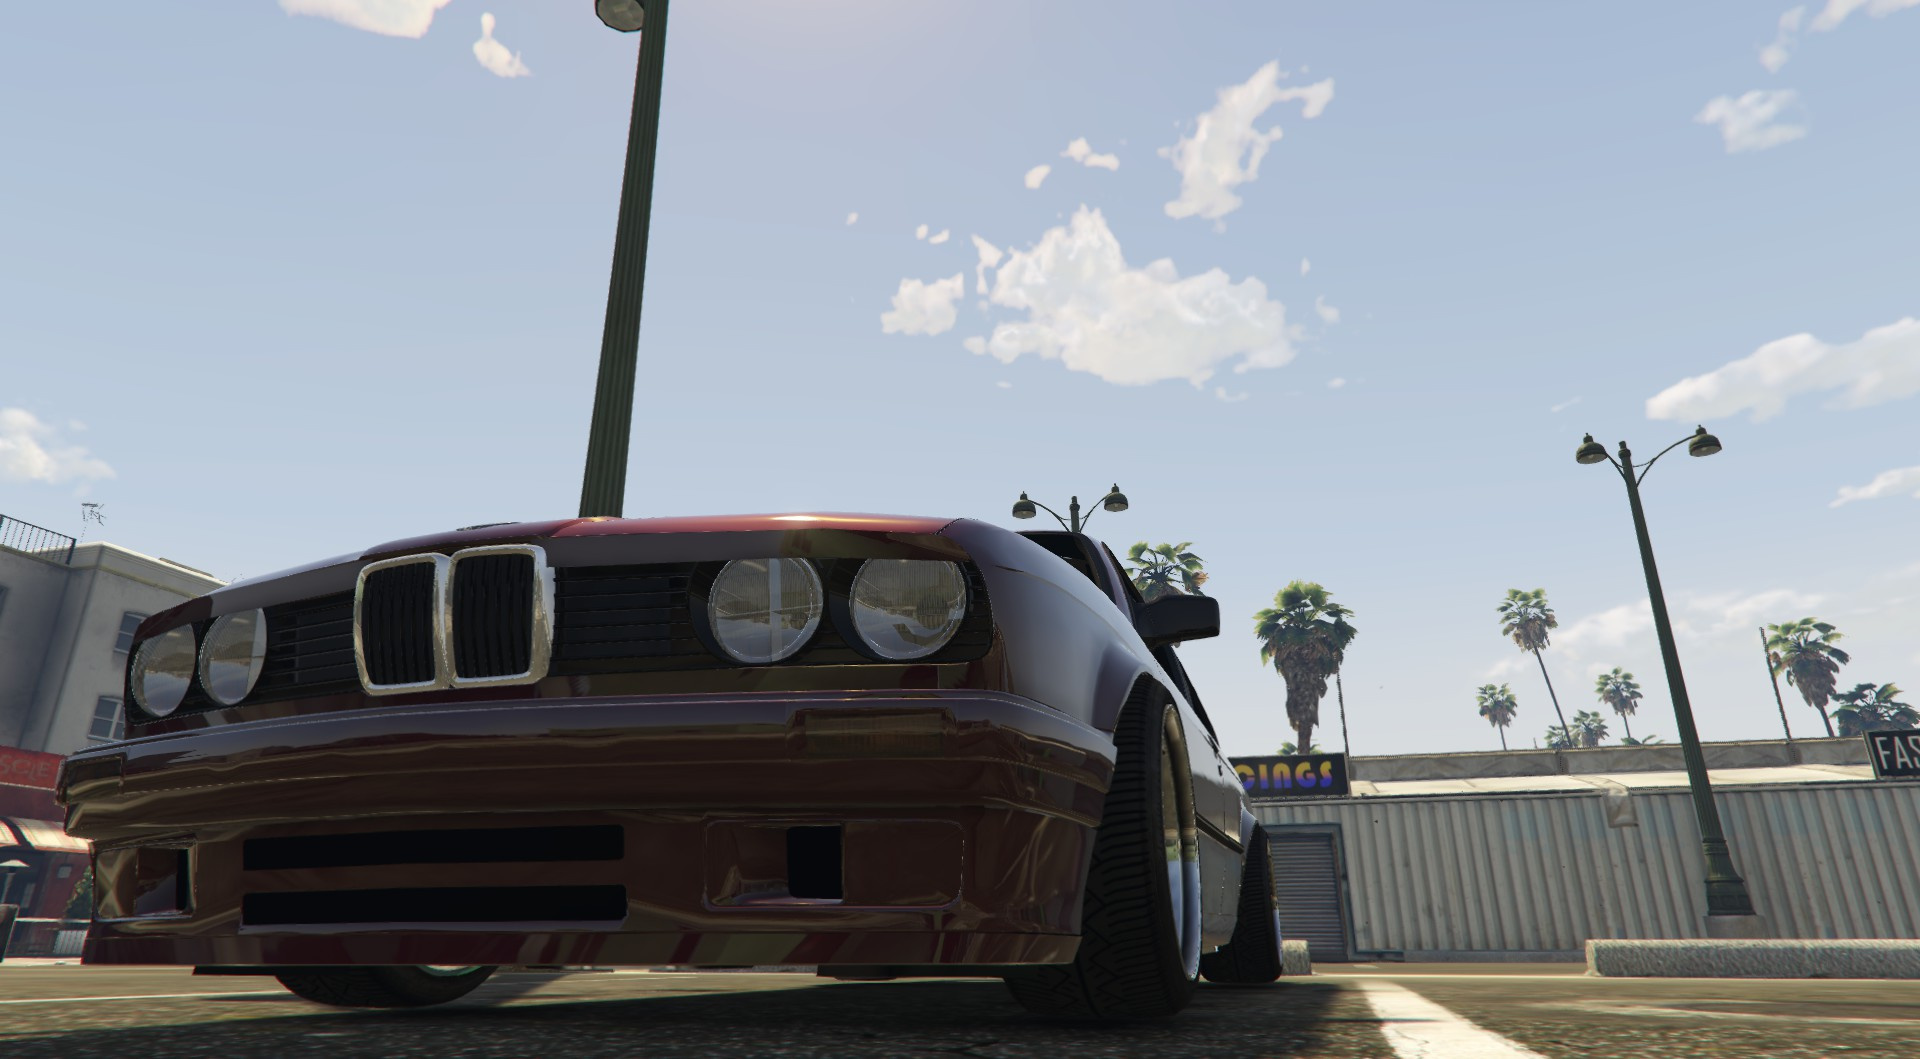 BMW e30 325i [Add-On | Tuning] - GTA5-Mods com